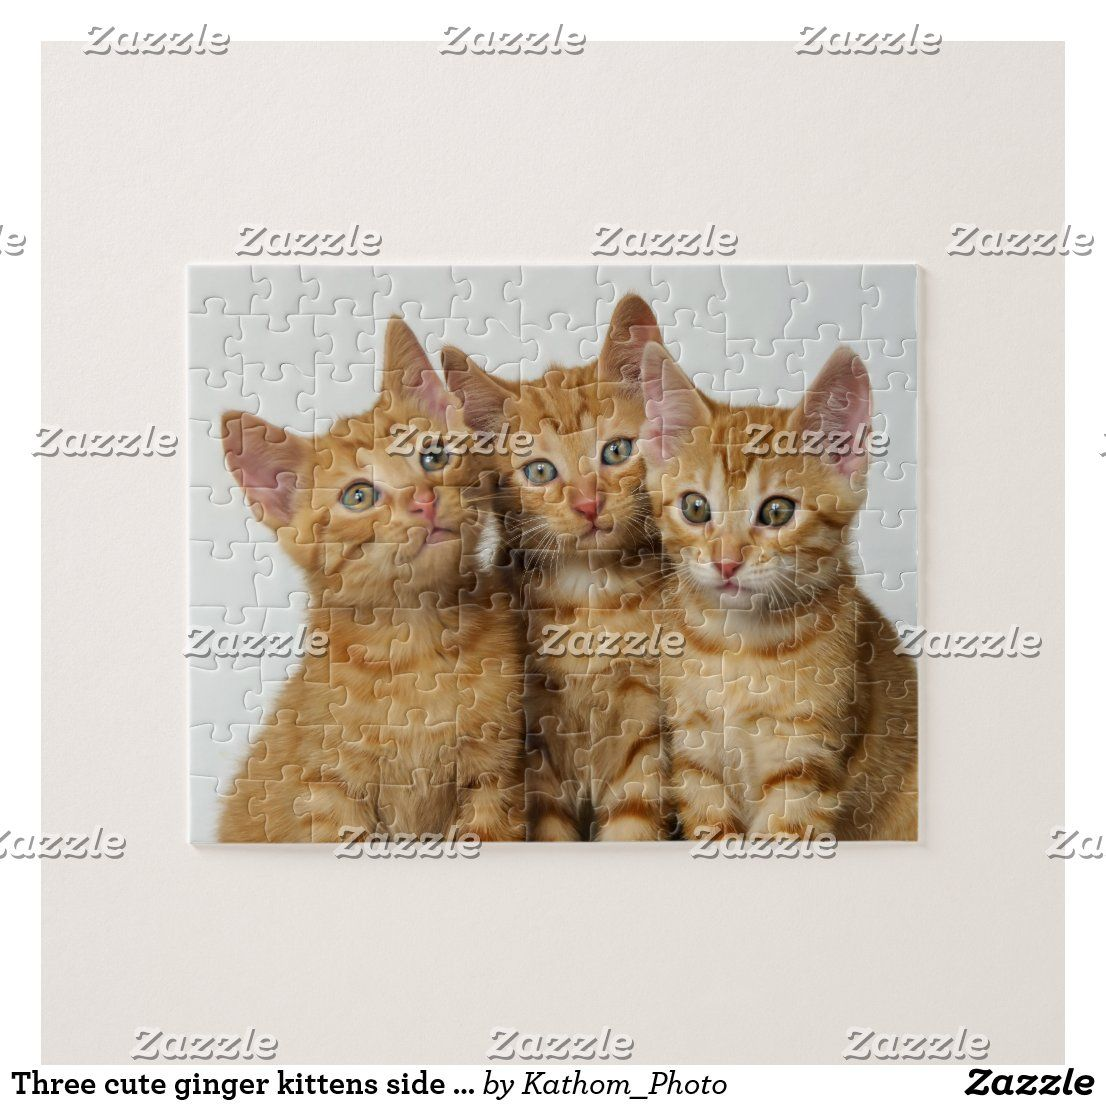 Three cute ginger kittens side by side jigsaw puzzle | Zazzle.com